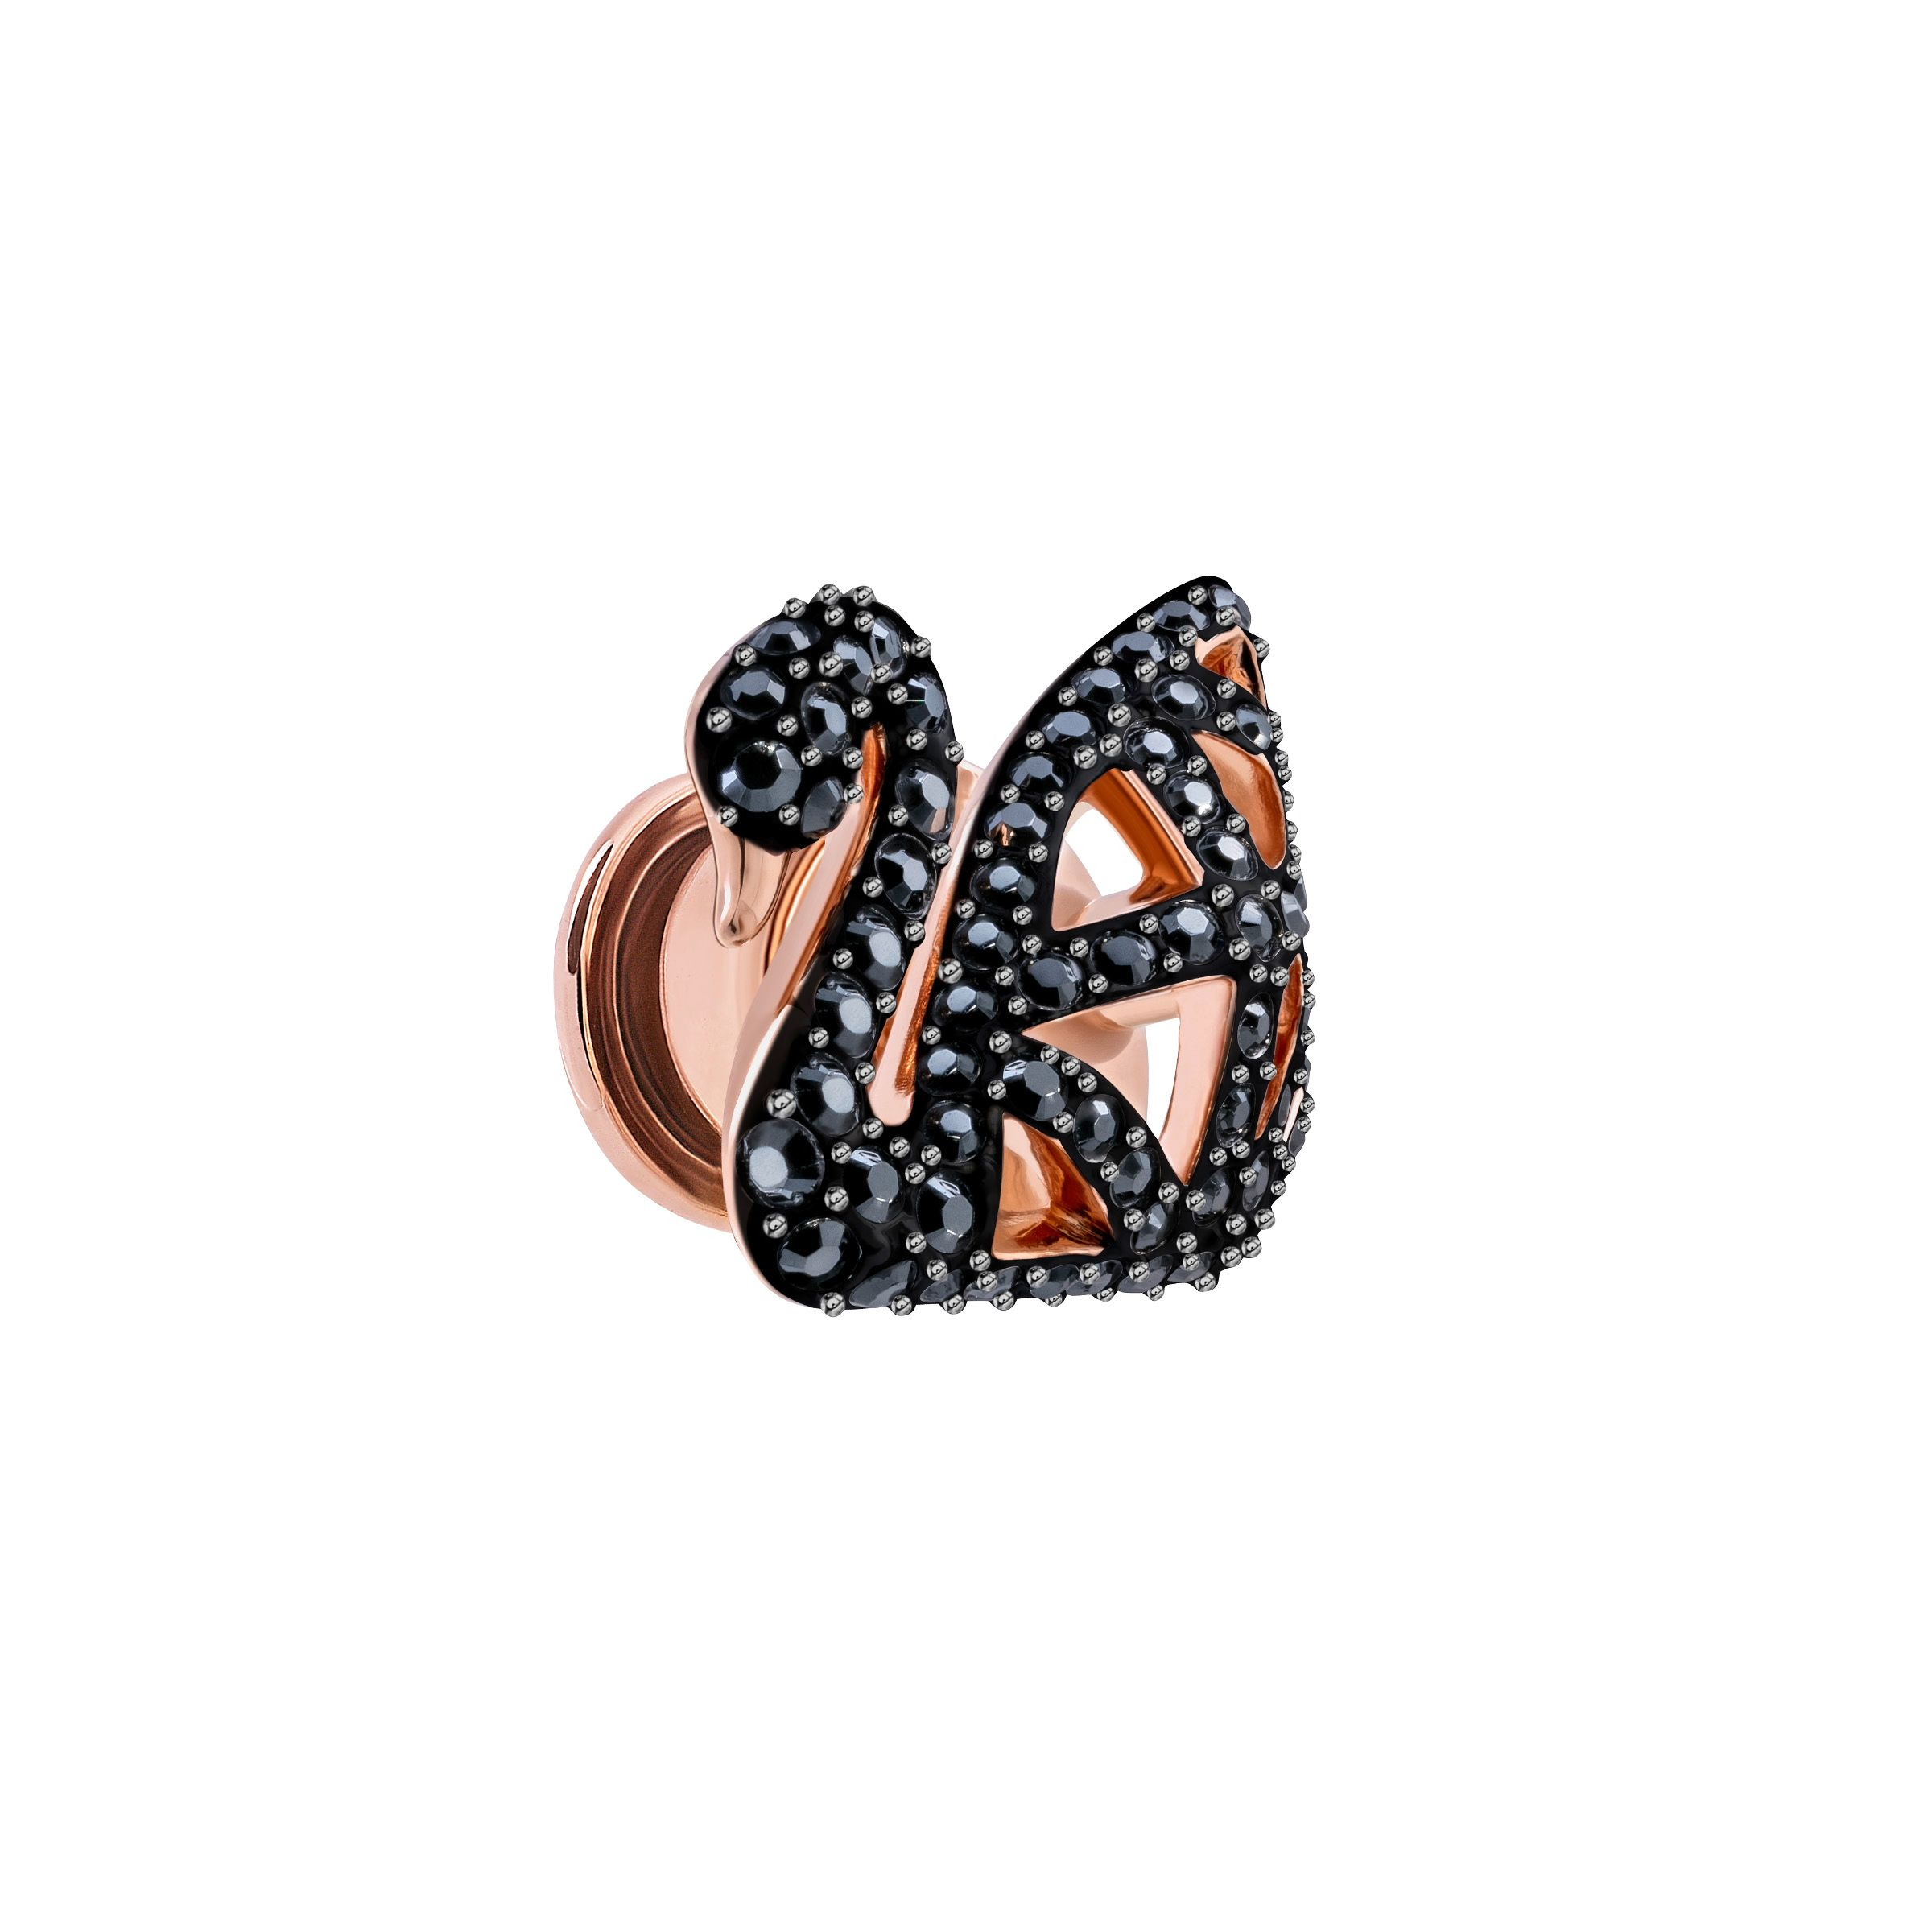 Swarovski Facet Swan Tack Pin, Black, Rose Gold Plating, Black